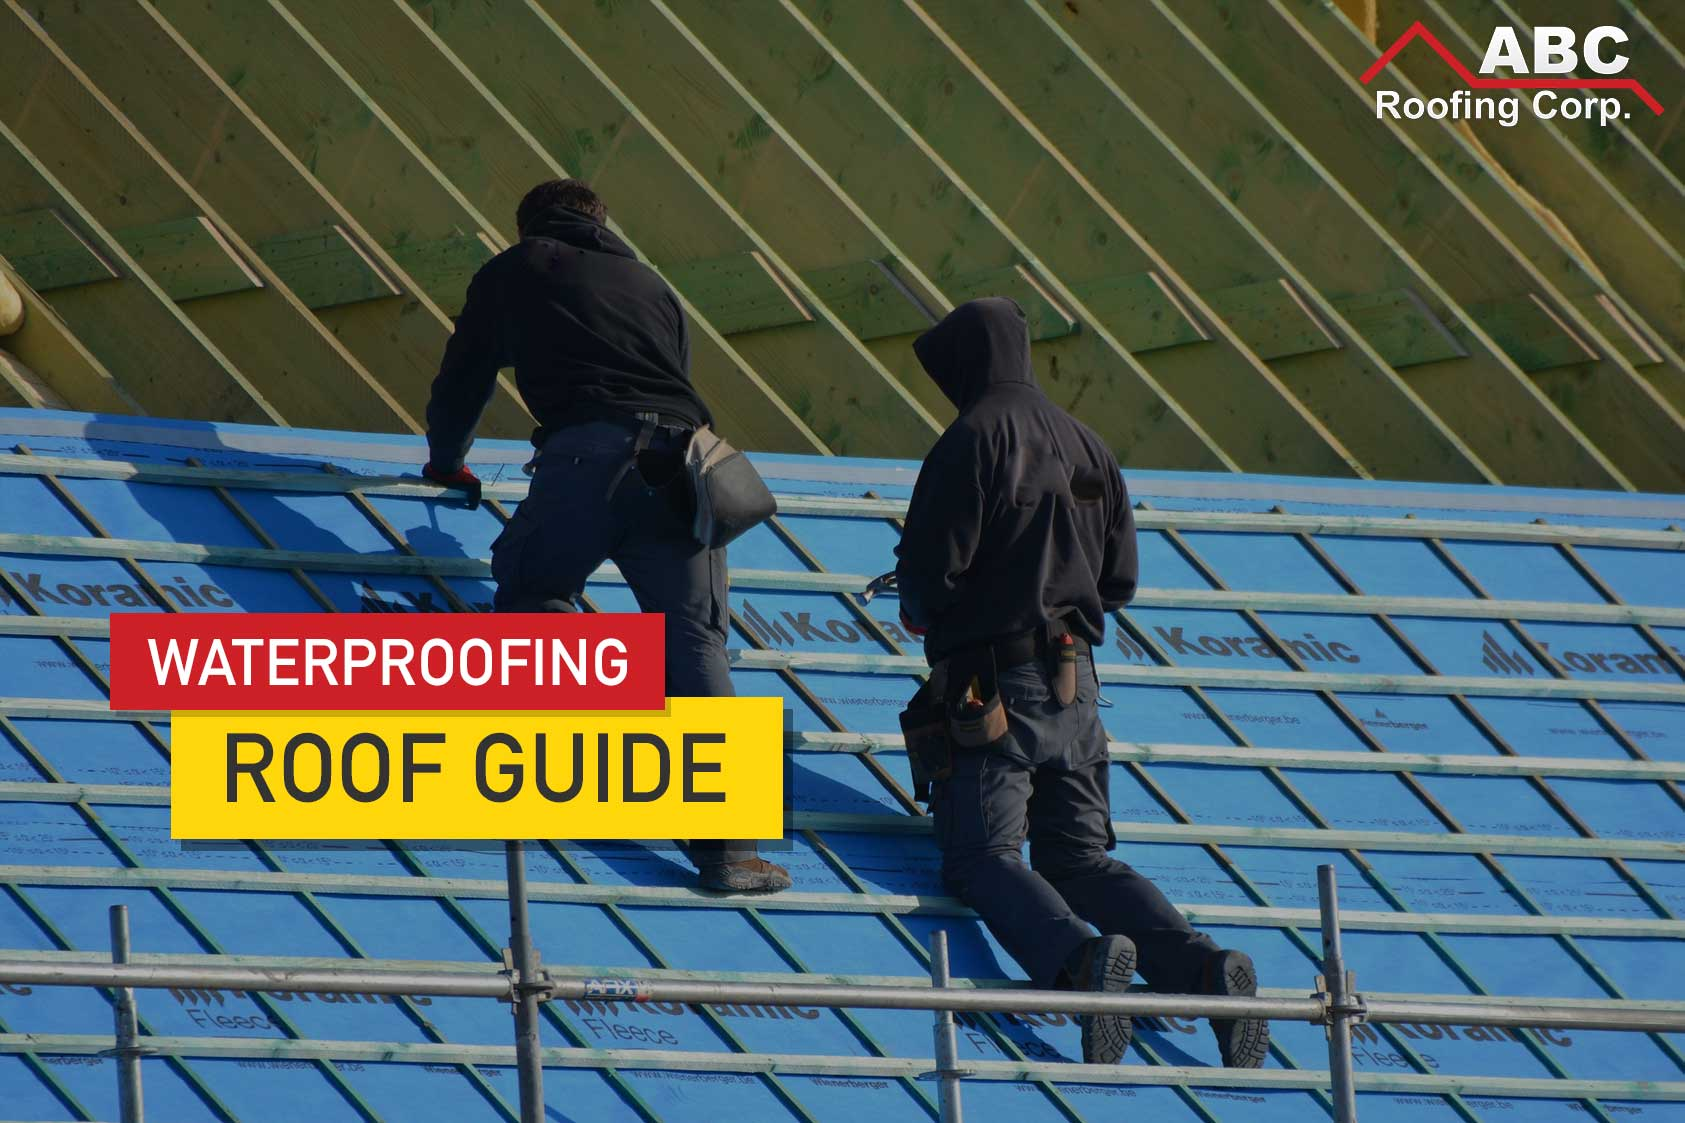 Waterproofing Roof Guide